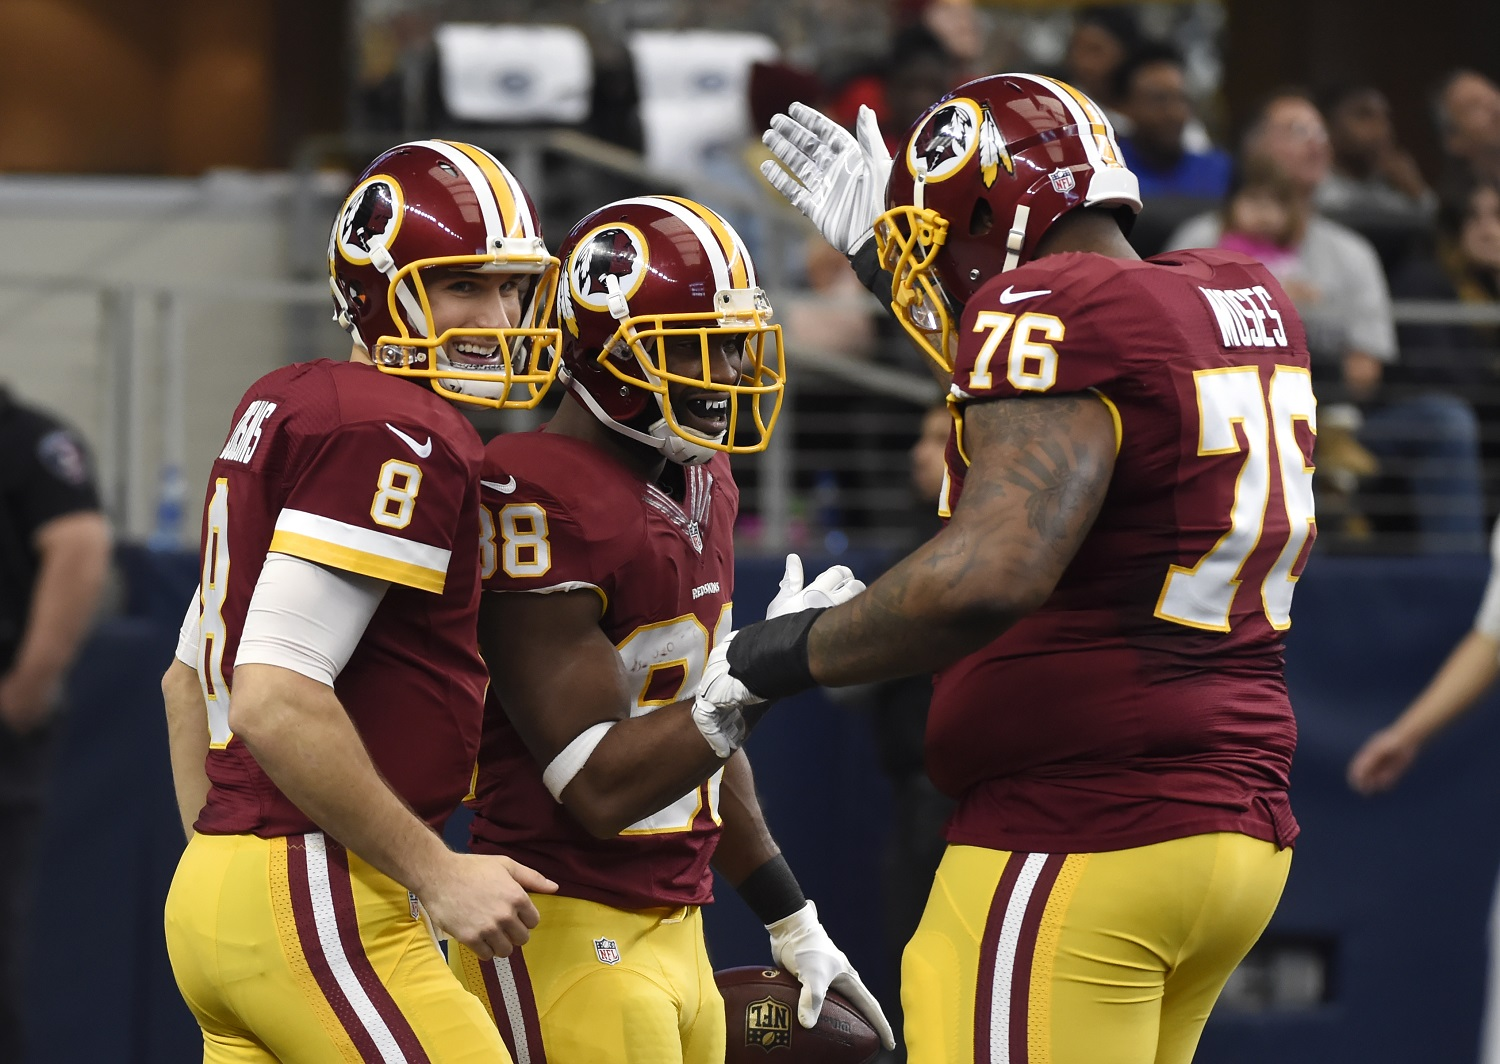 Redskins hope to ride momentum to first playoff win in 10 years